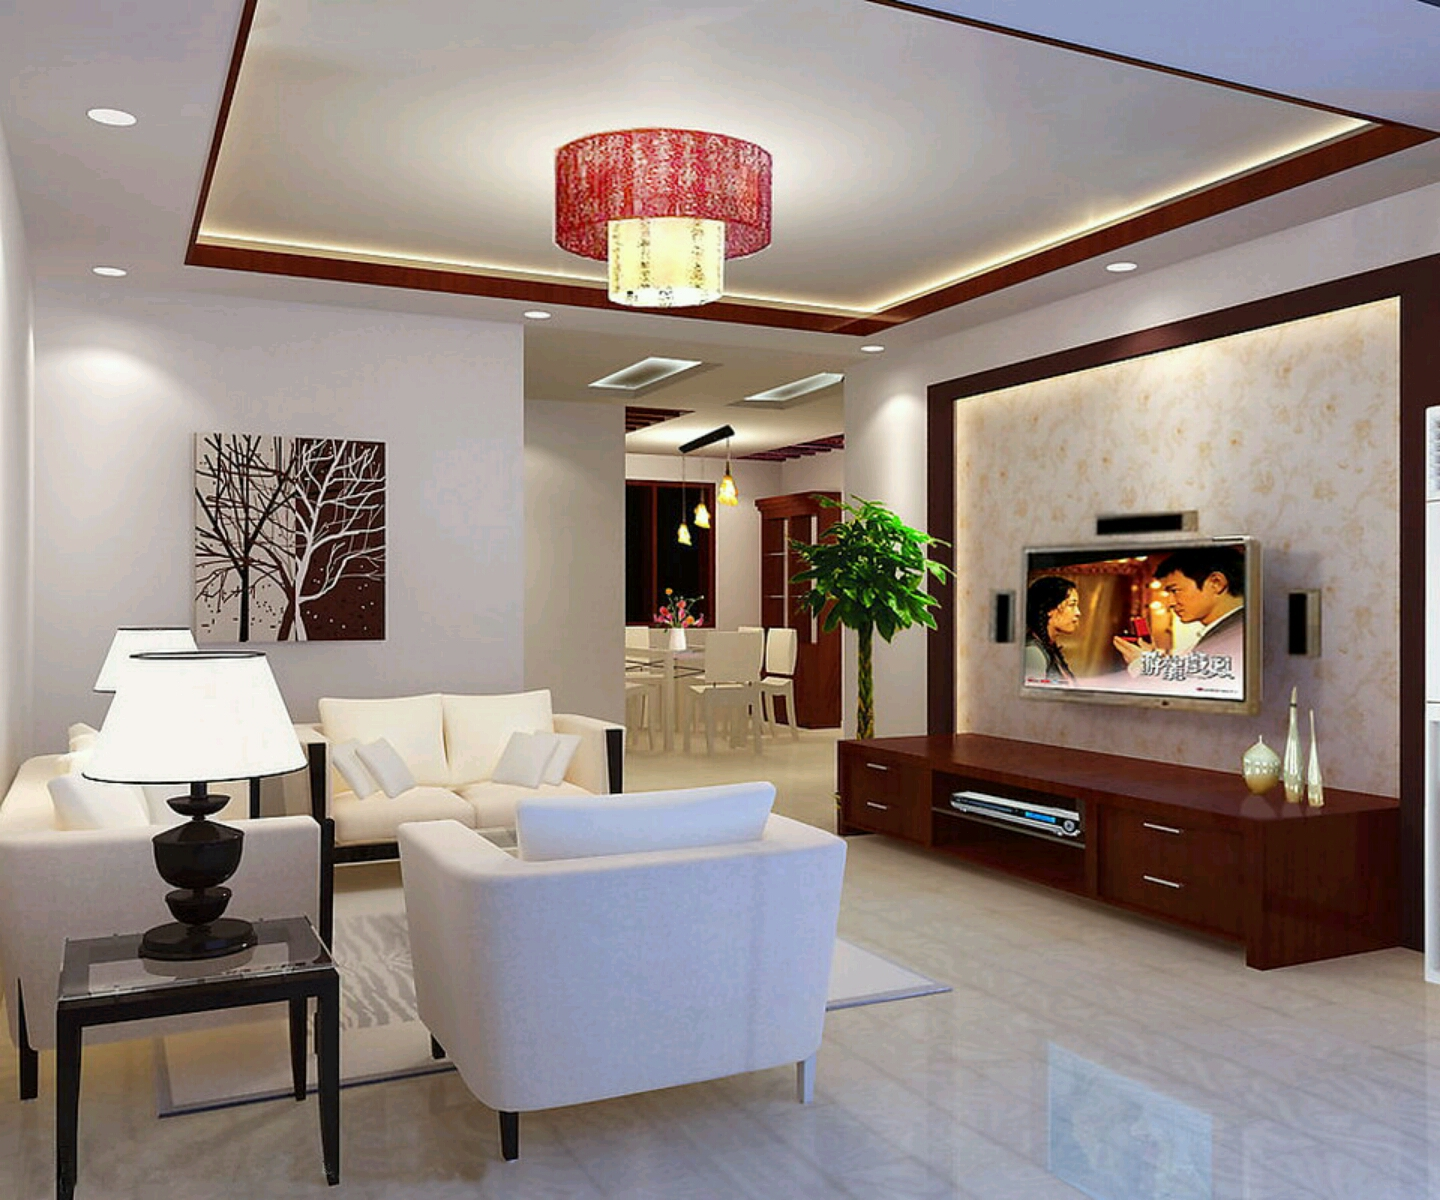 Modern interior decoration living rooms ceiling designs for Internal home decoration